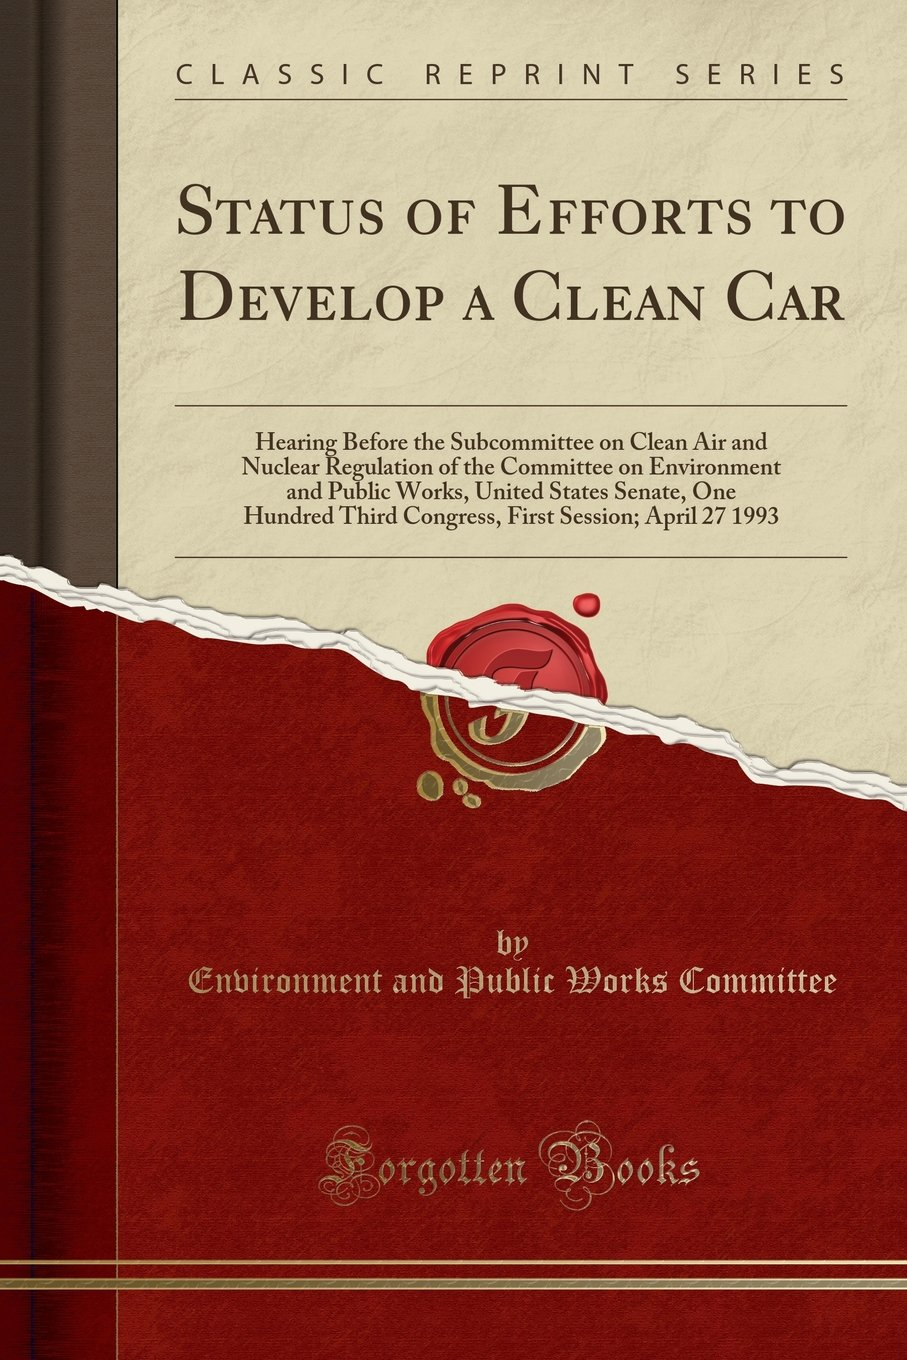 Download Status of Efforts to Develop a Clean Car: Hearing Before the Subcommittee on Clean Air and Nuclear Regulation of the Committee on Environment and ... Third Congress, First Session; April 27 1993 PDF